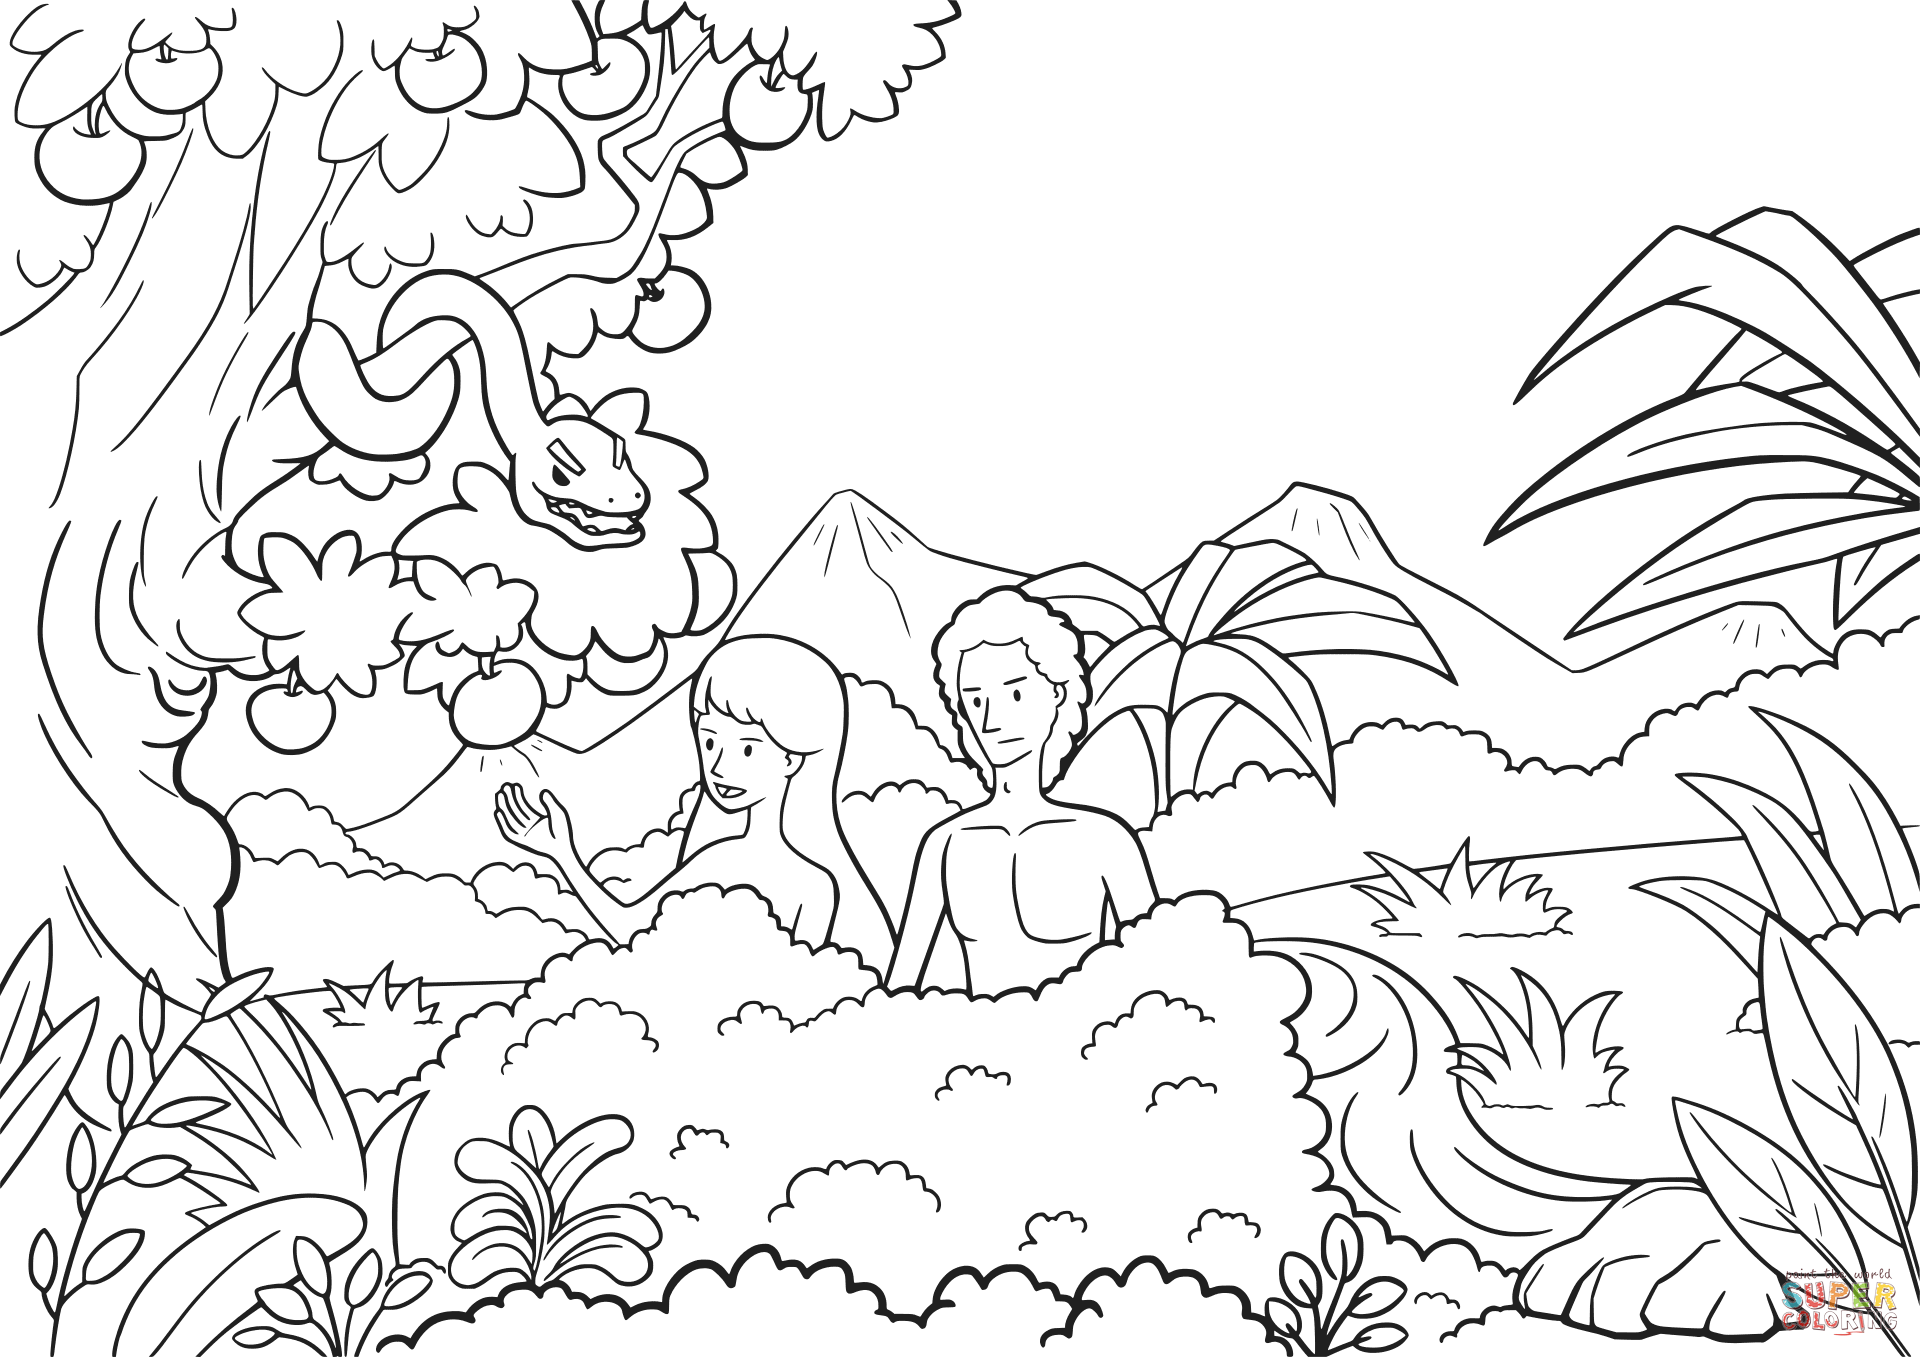 coloring pictures of adam and eve bible stories coloring page getcoloringpagescom pictures of and adam eve coloring